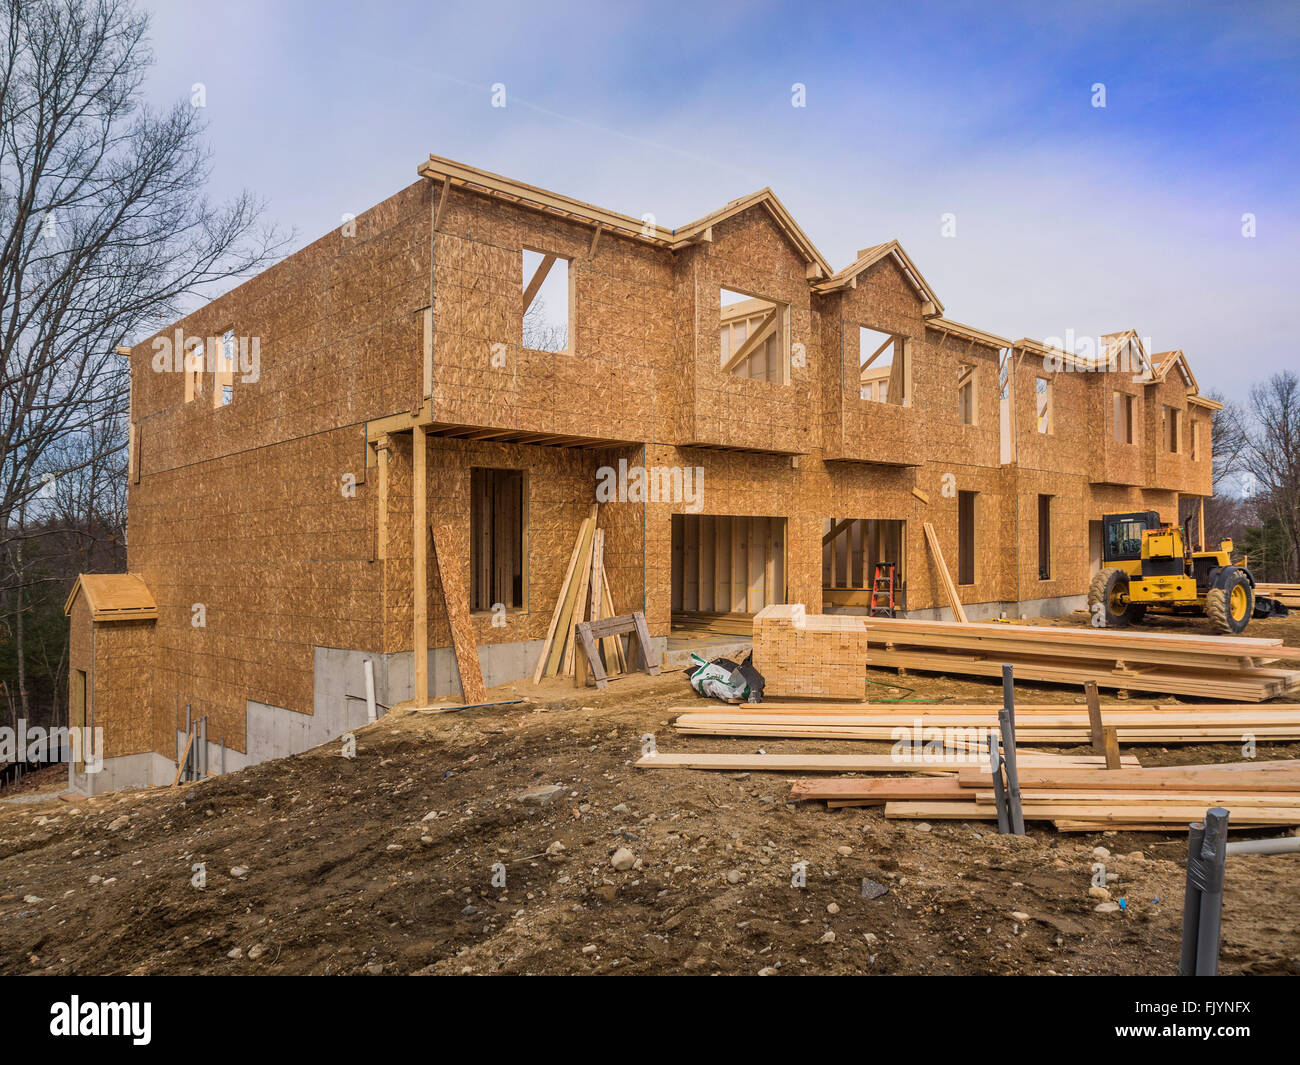 New condominium construction site - Stock Image